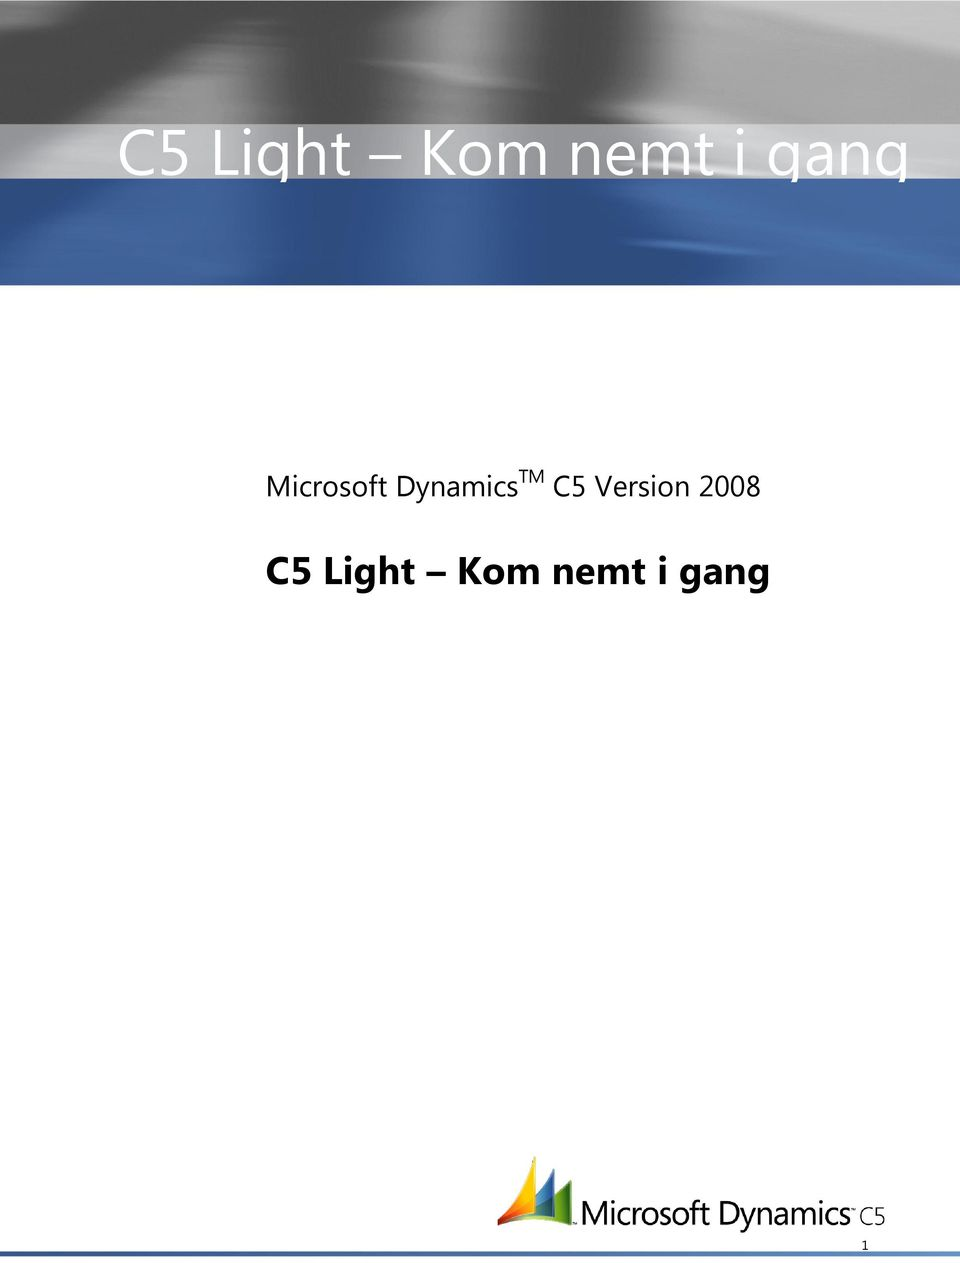 C5 Light Microsoft Dynamics TM C5